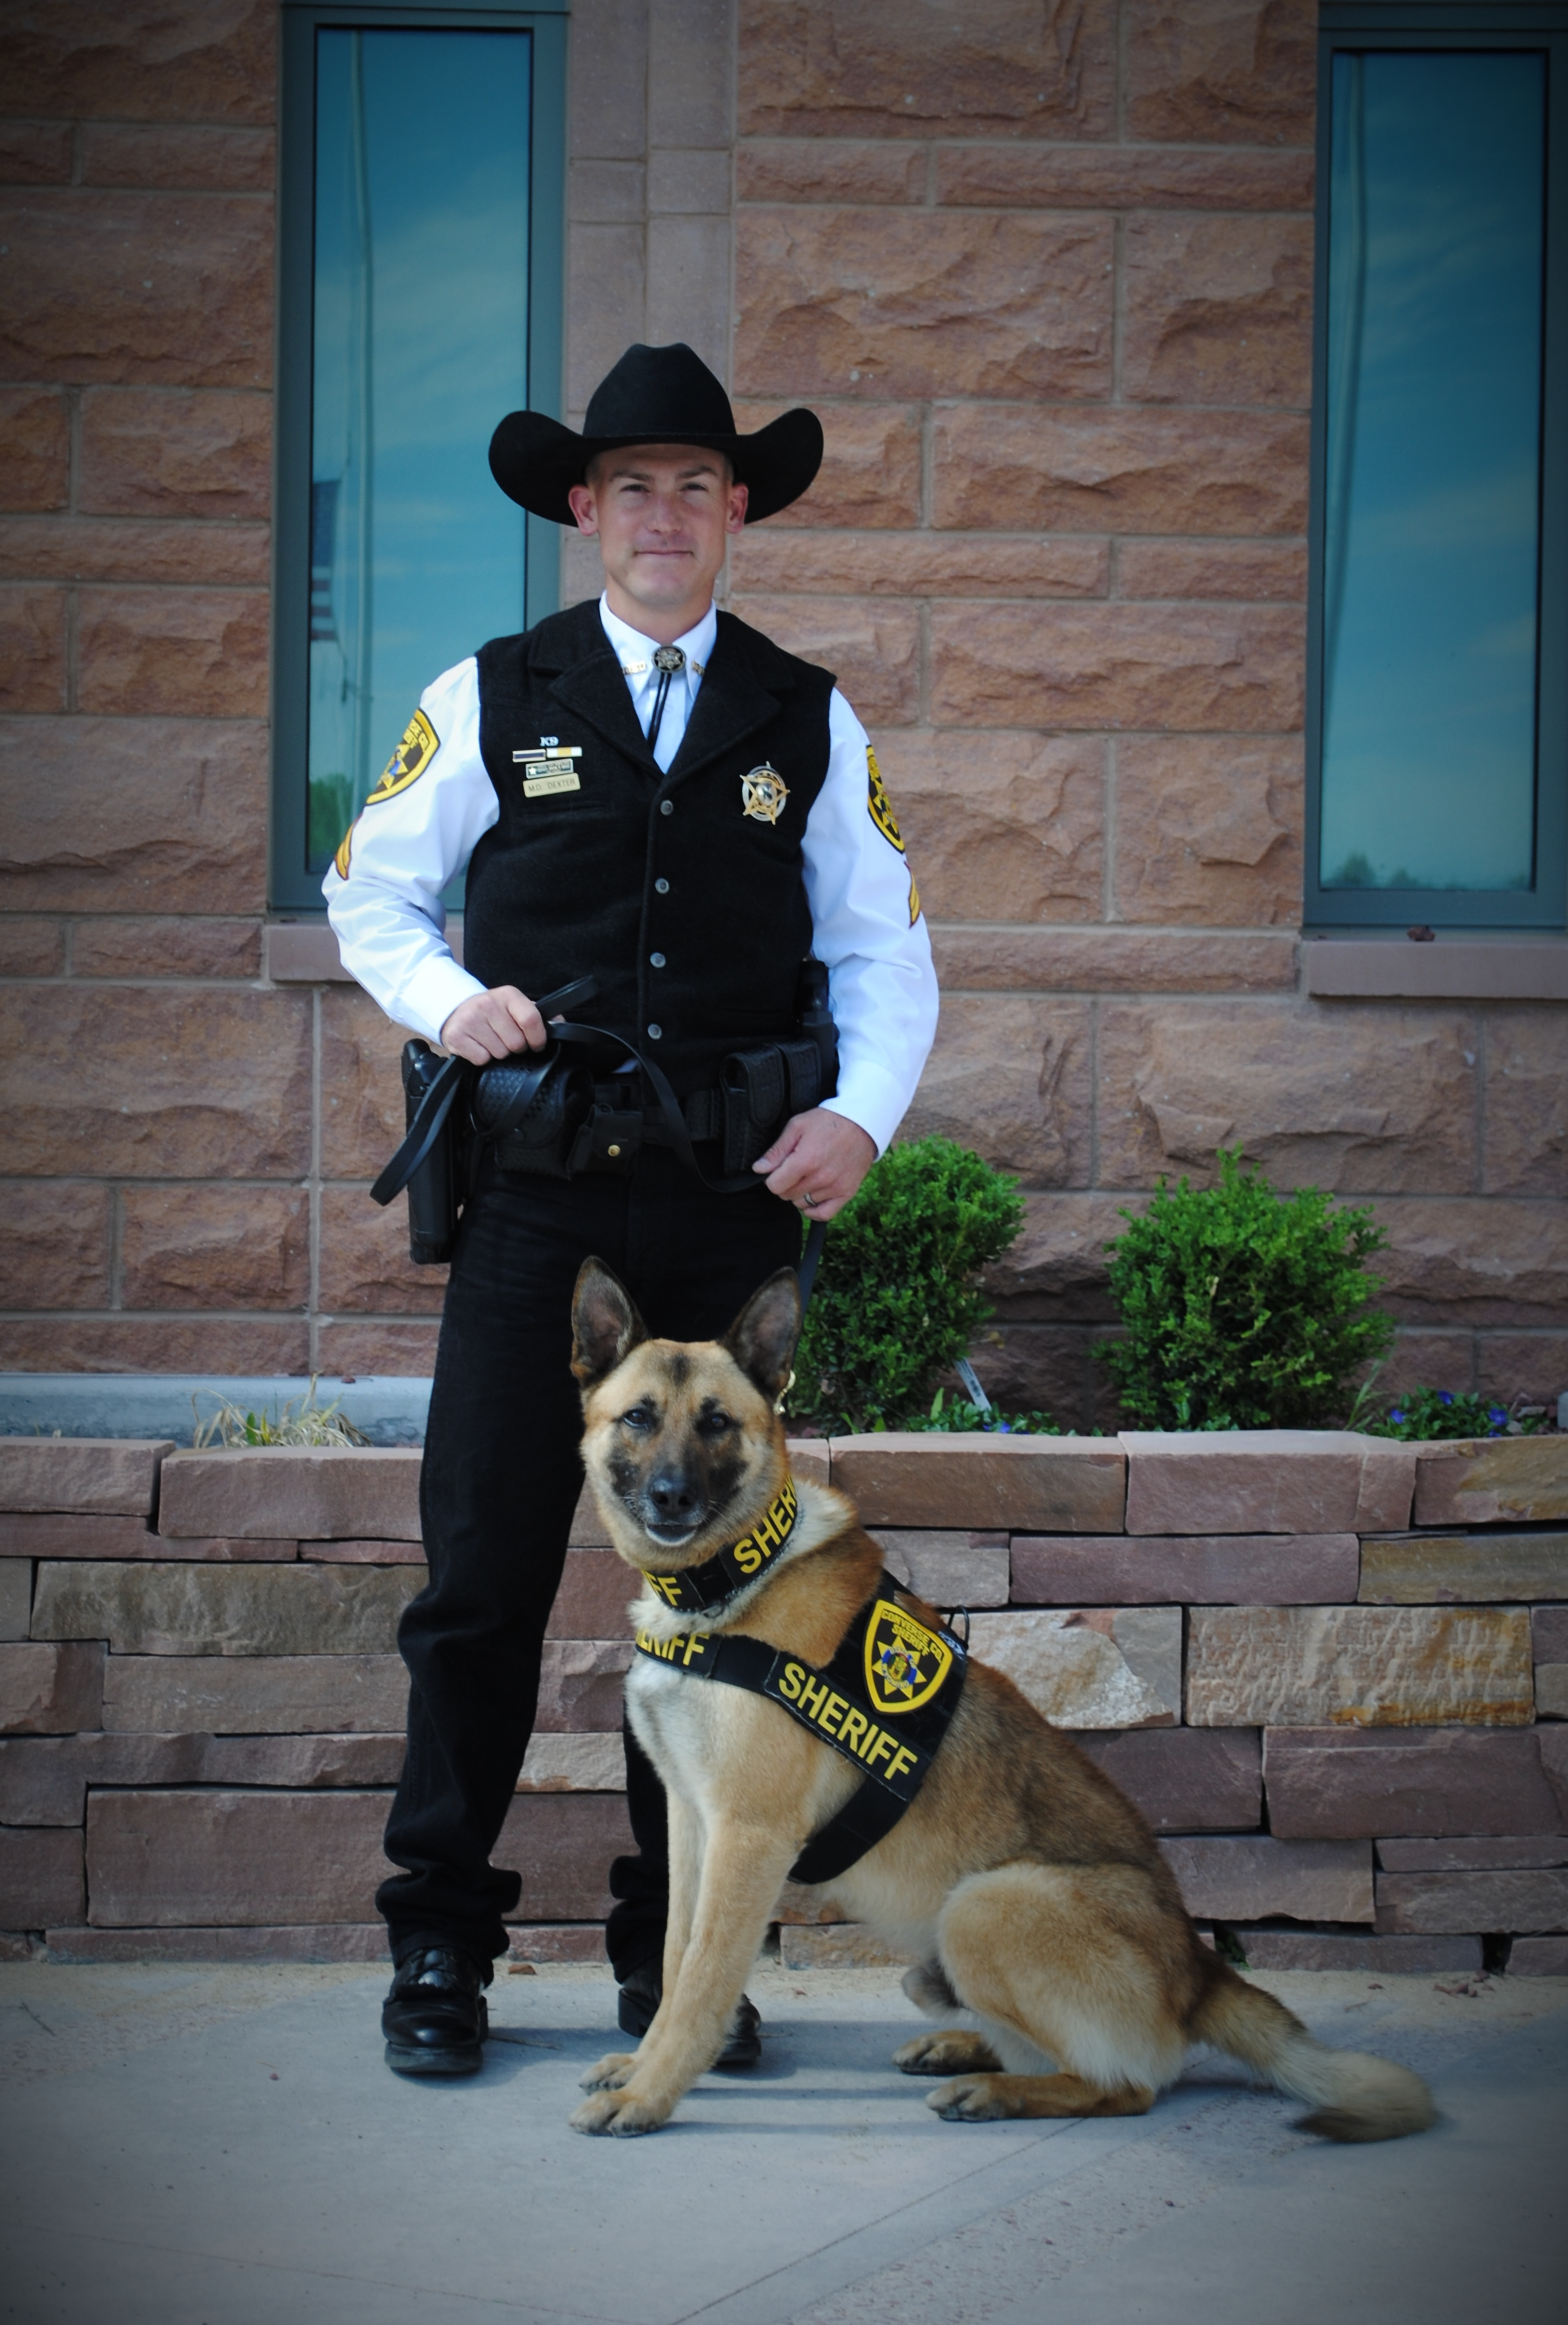 Cpl. Dexter and Trigger